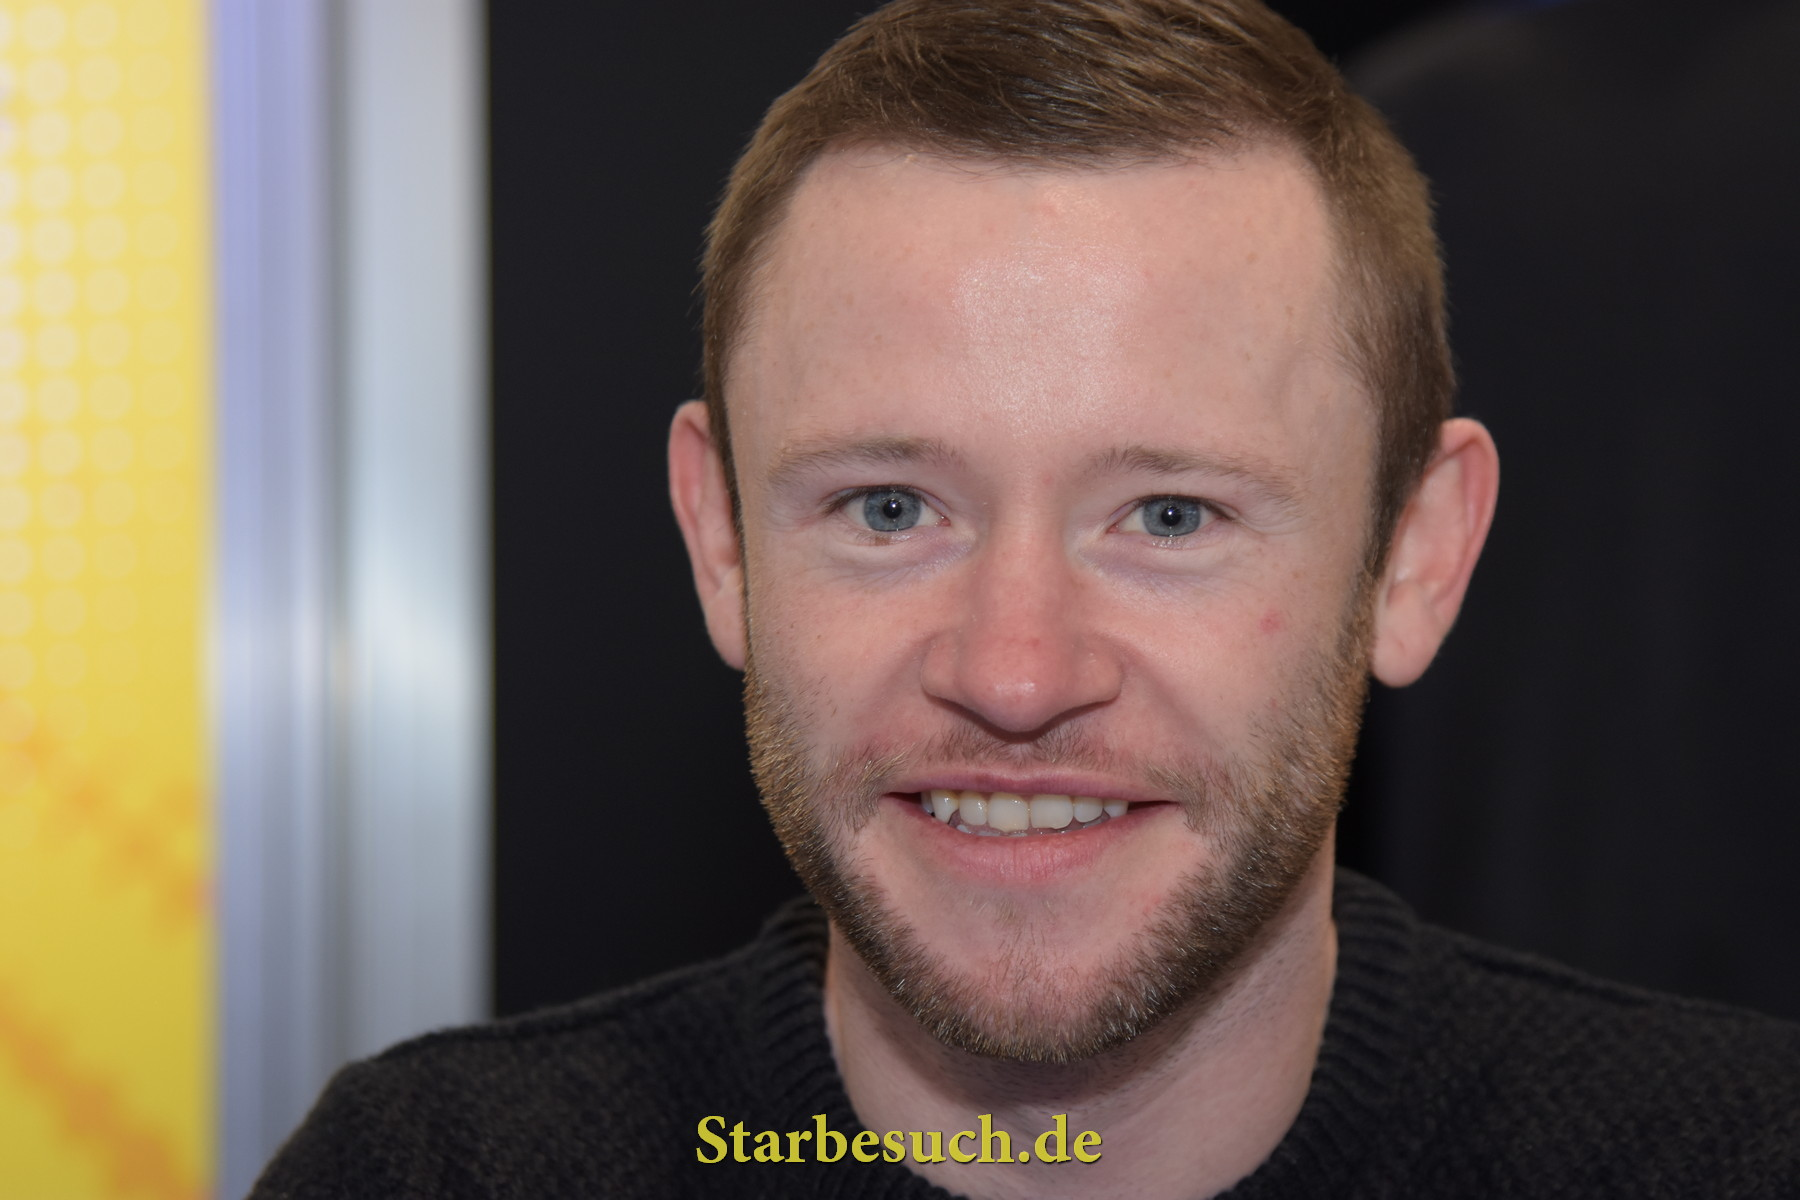 Dortmund, Germany - December 9th 2017: British Actor Devon Murray (* 1988,  Seamus Finnigan in the Harry Potter film series) at German Comic Con Dortmund. More than 30 celebrities attended the event.